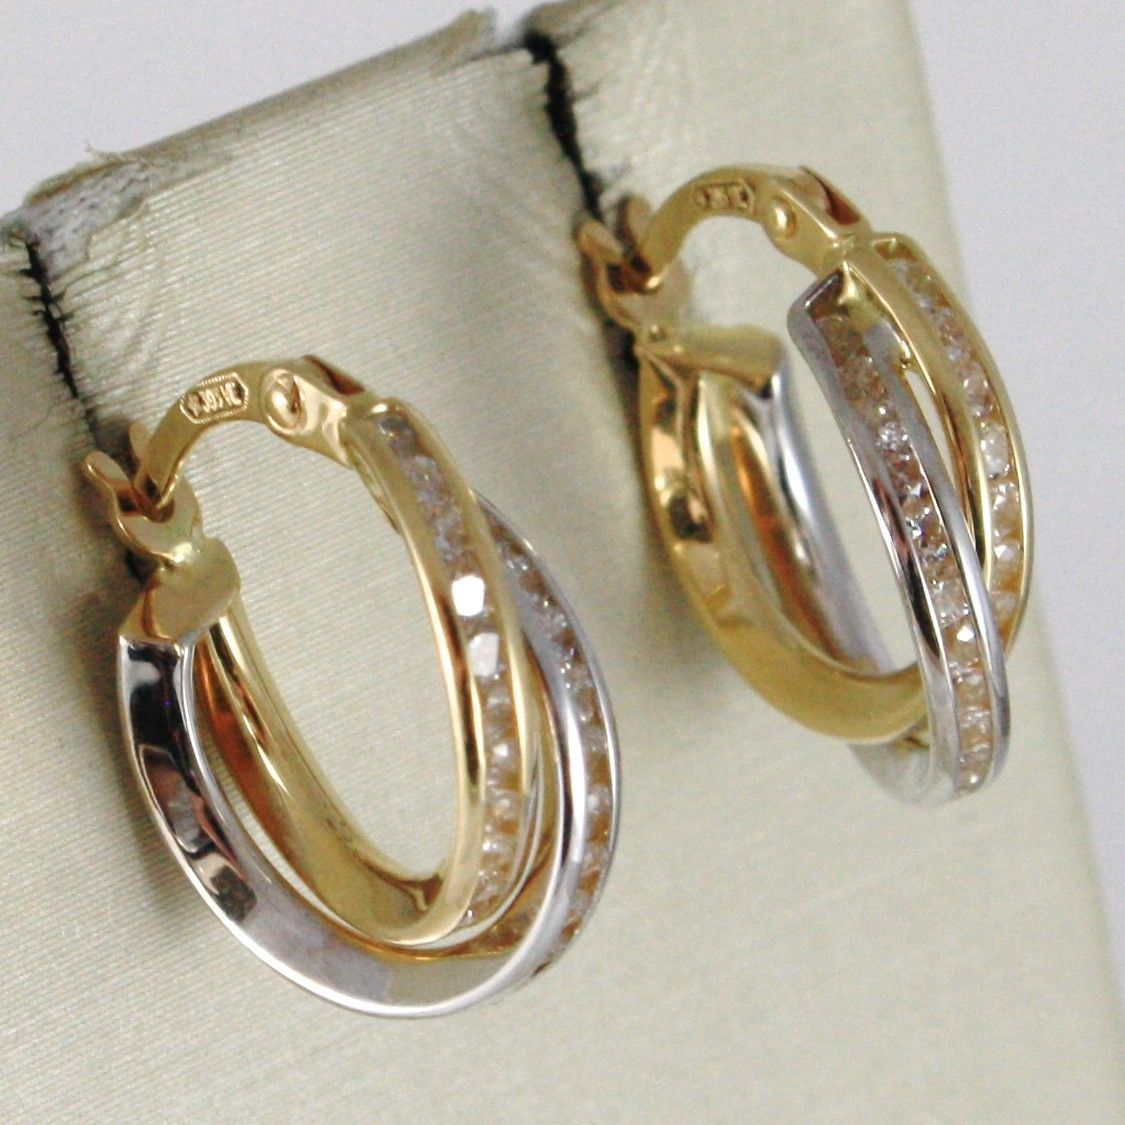 18K WHITE & YELLOW GOLD DOUBLE PENDANT CIRCLE HOOPS EARRINGS, TWISTED, ROPE